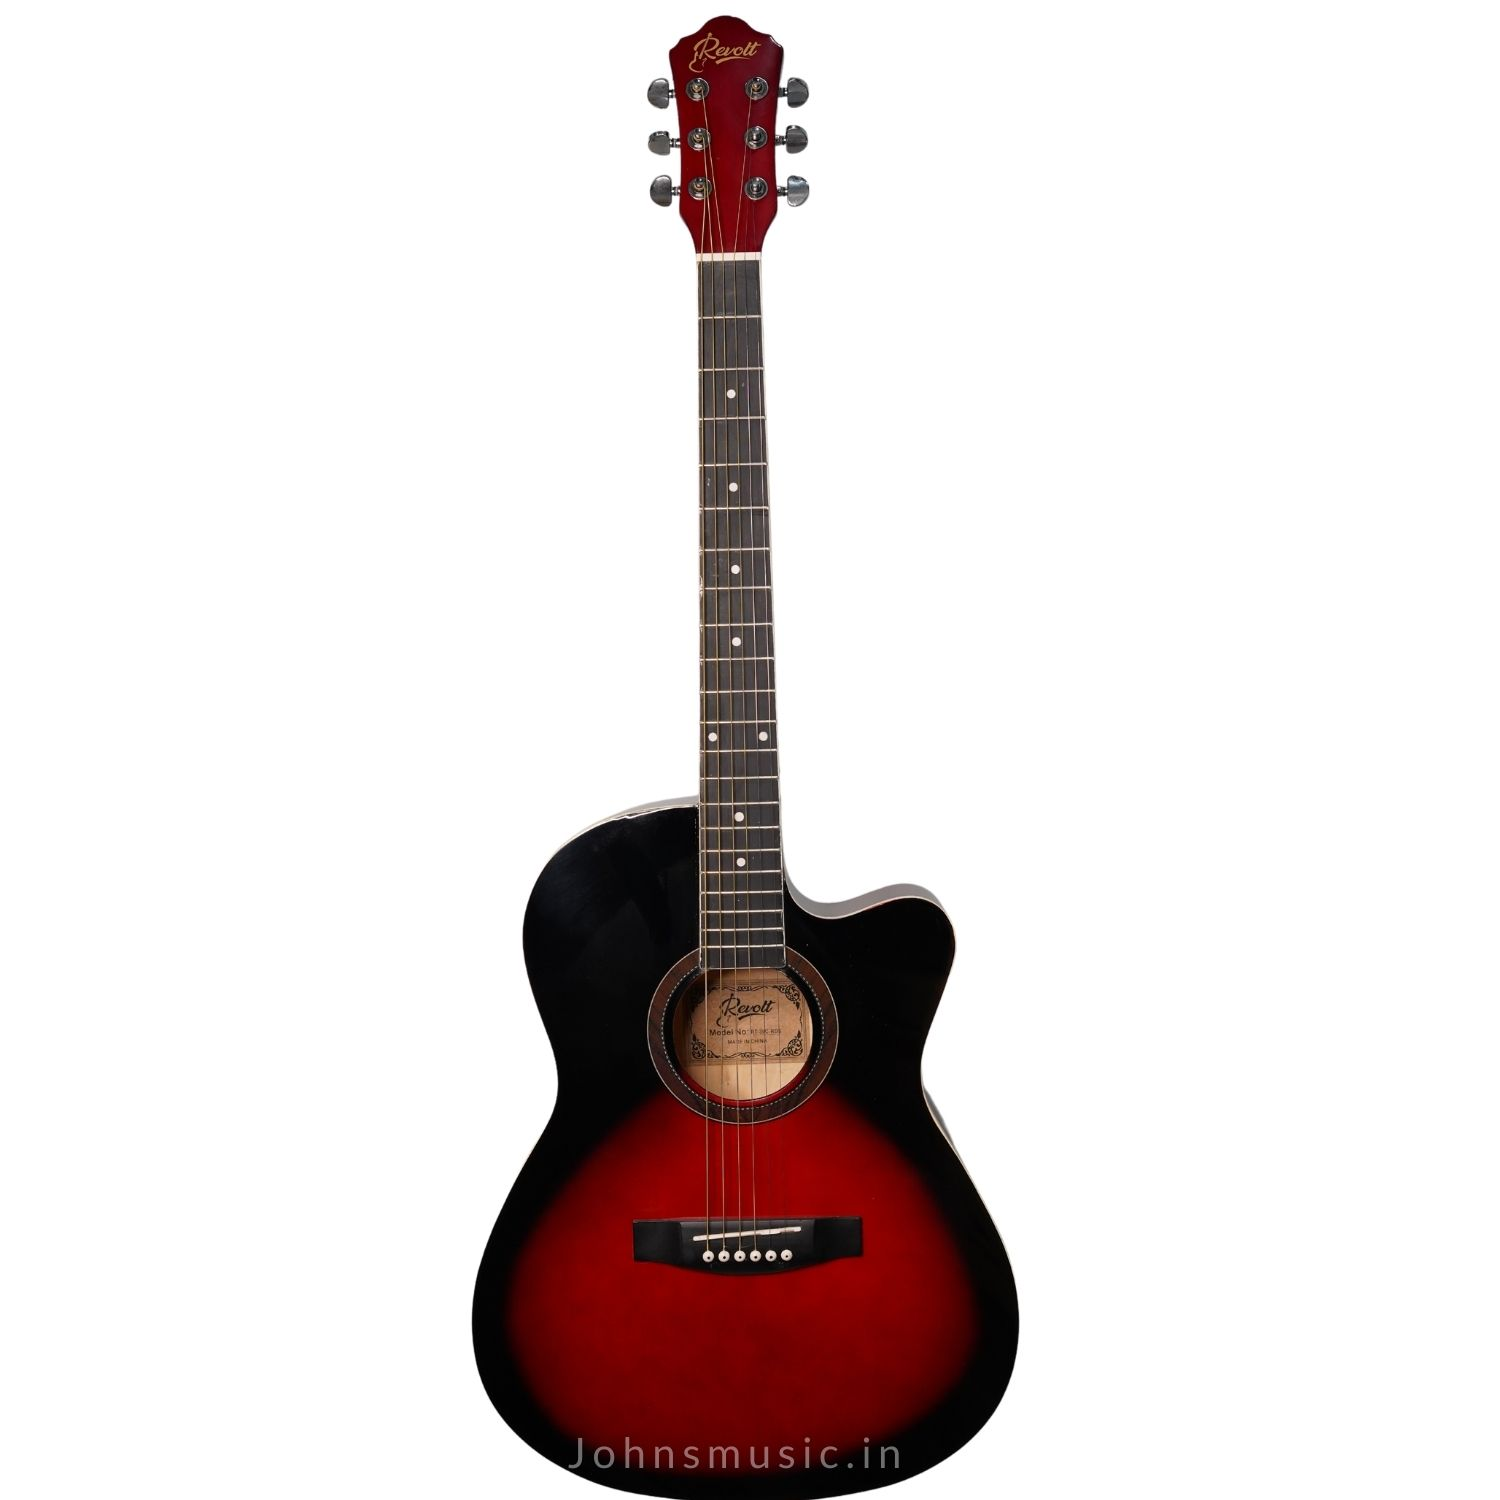 REvolt 39c beginner Acoustic Guitar  online price in india